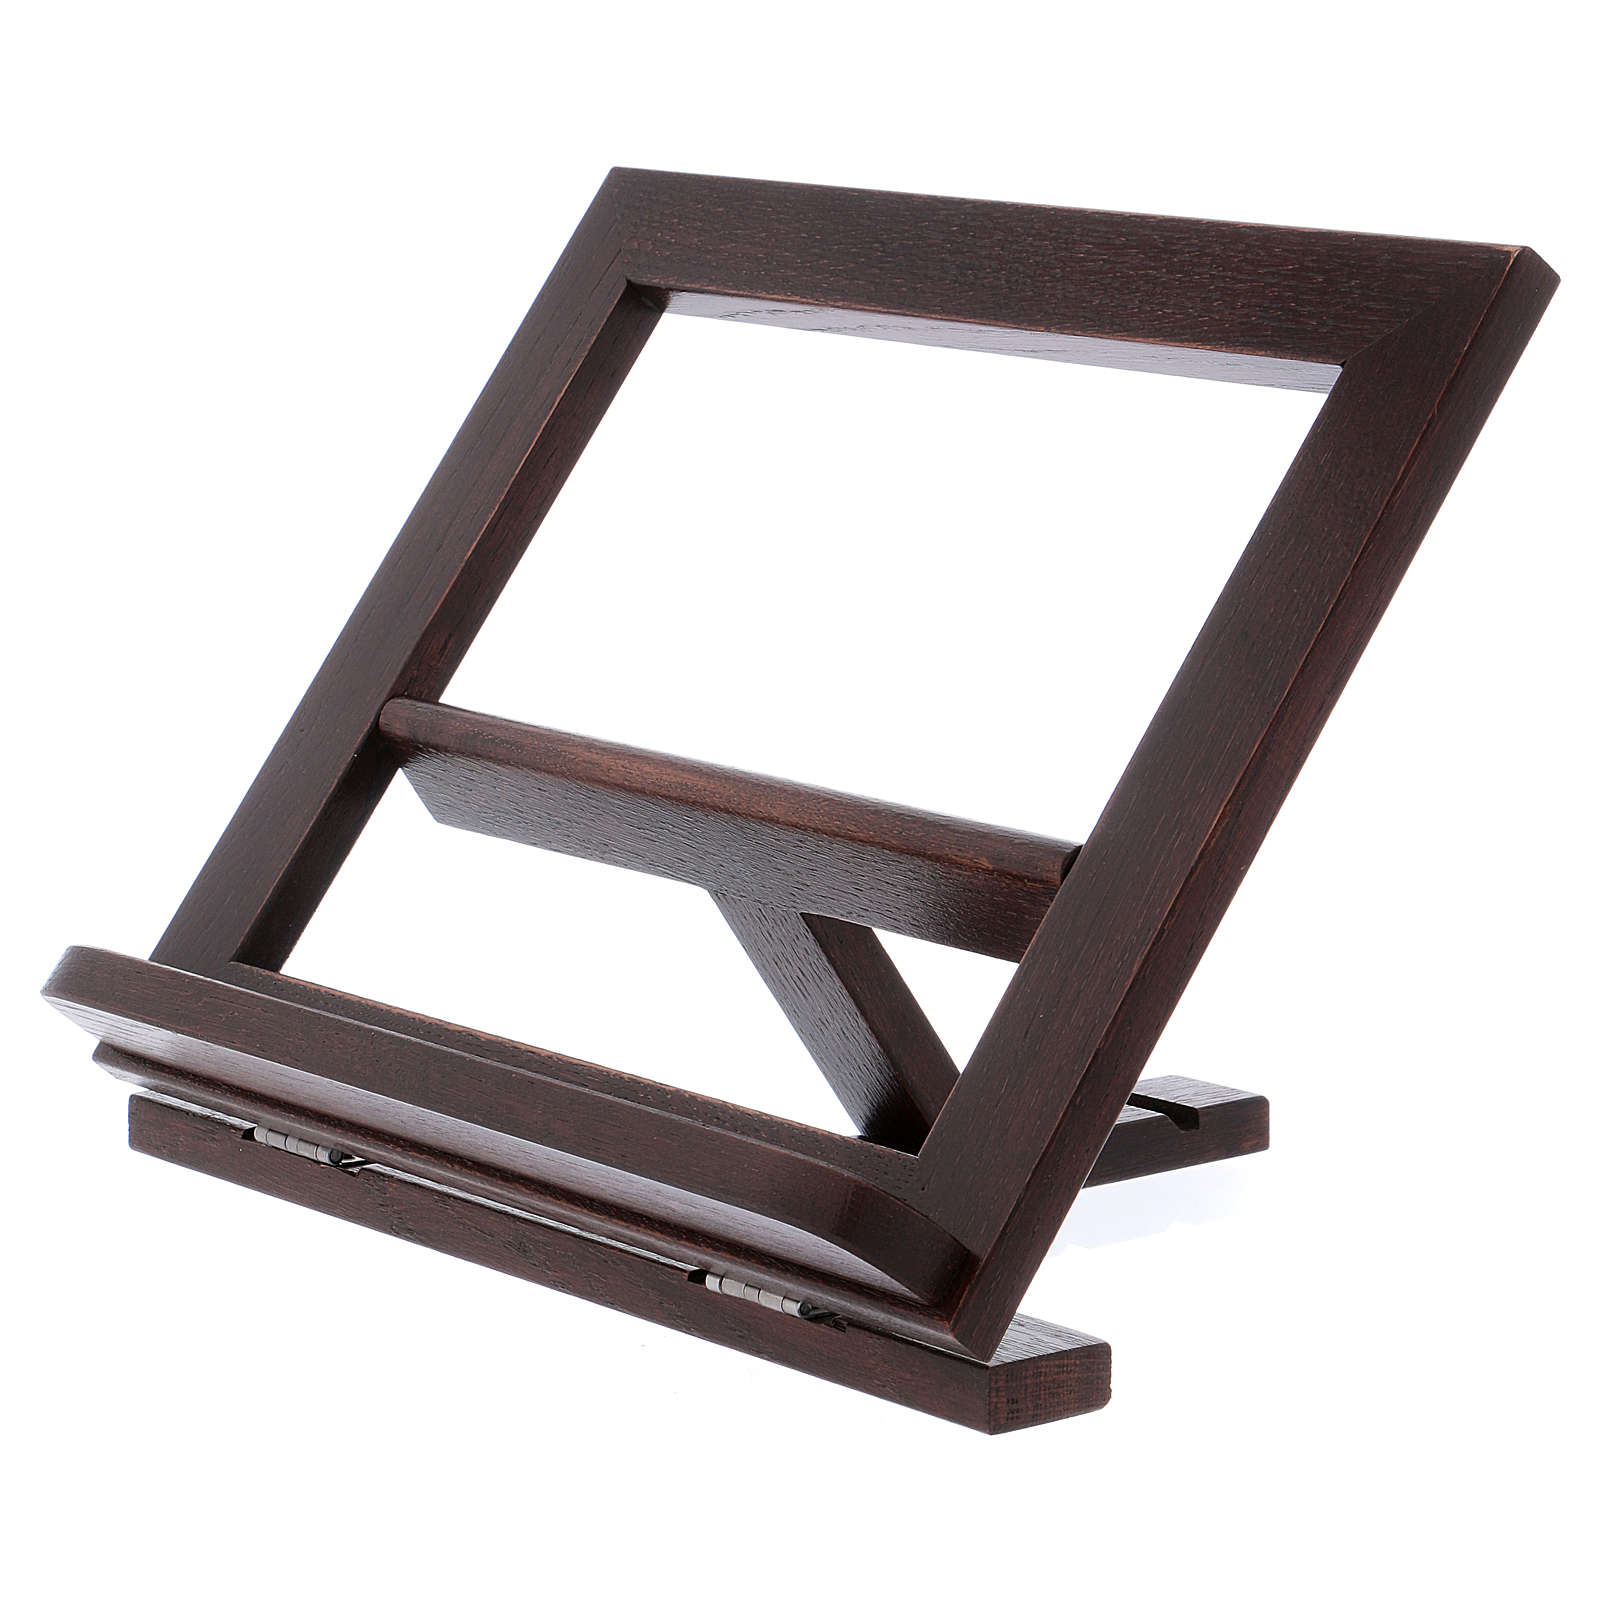 Small book-stand 4